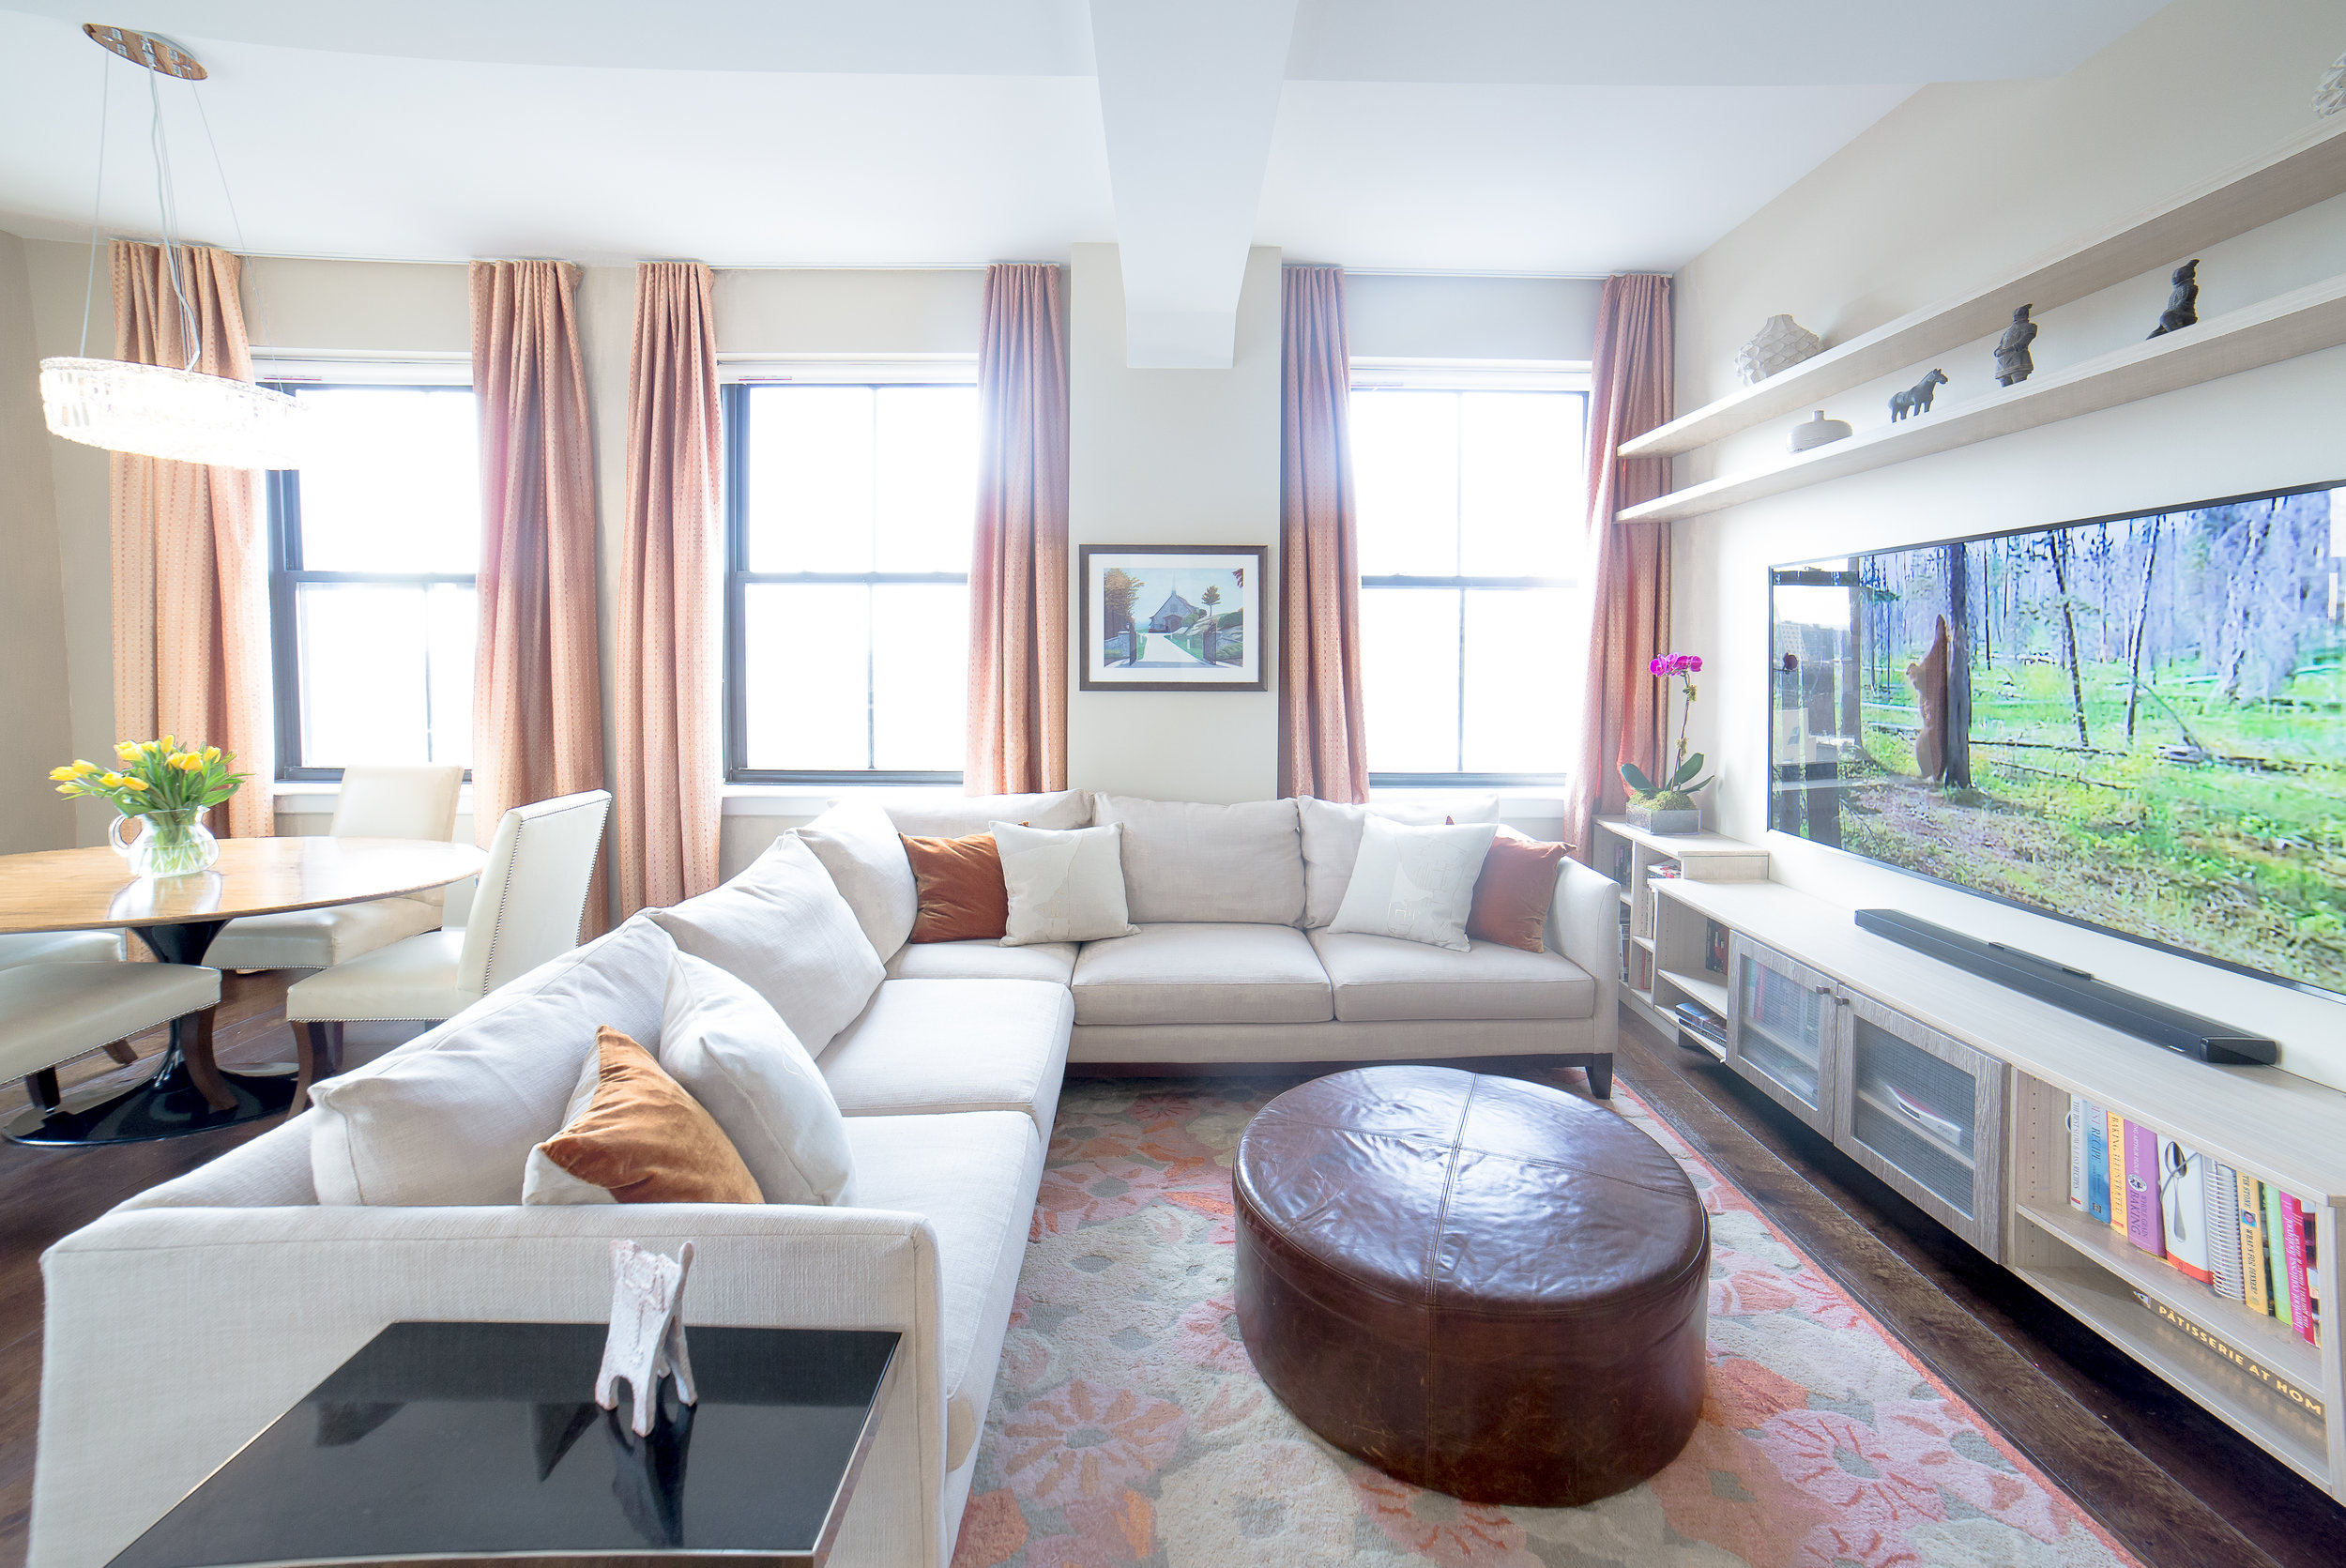 BEFORE AND AFTER LIVING ROOM THE BROOKLYN CLOCK TOWER RESIDENCE